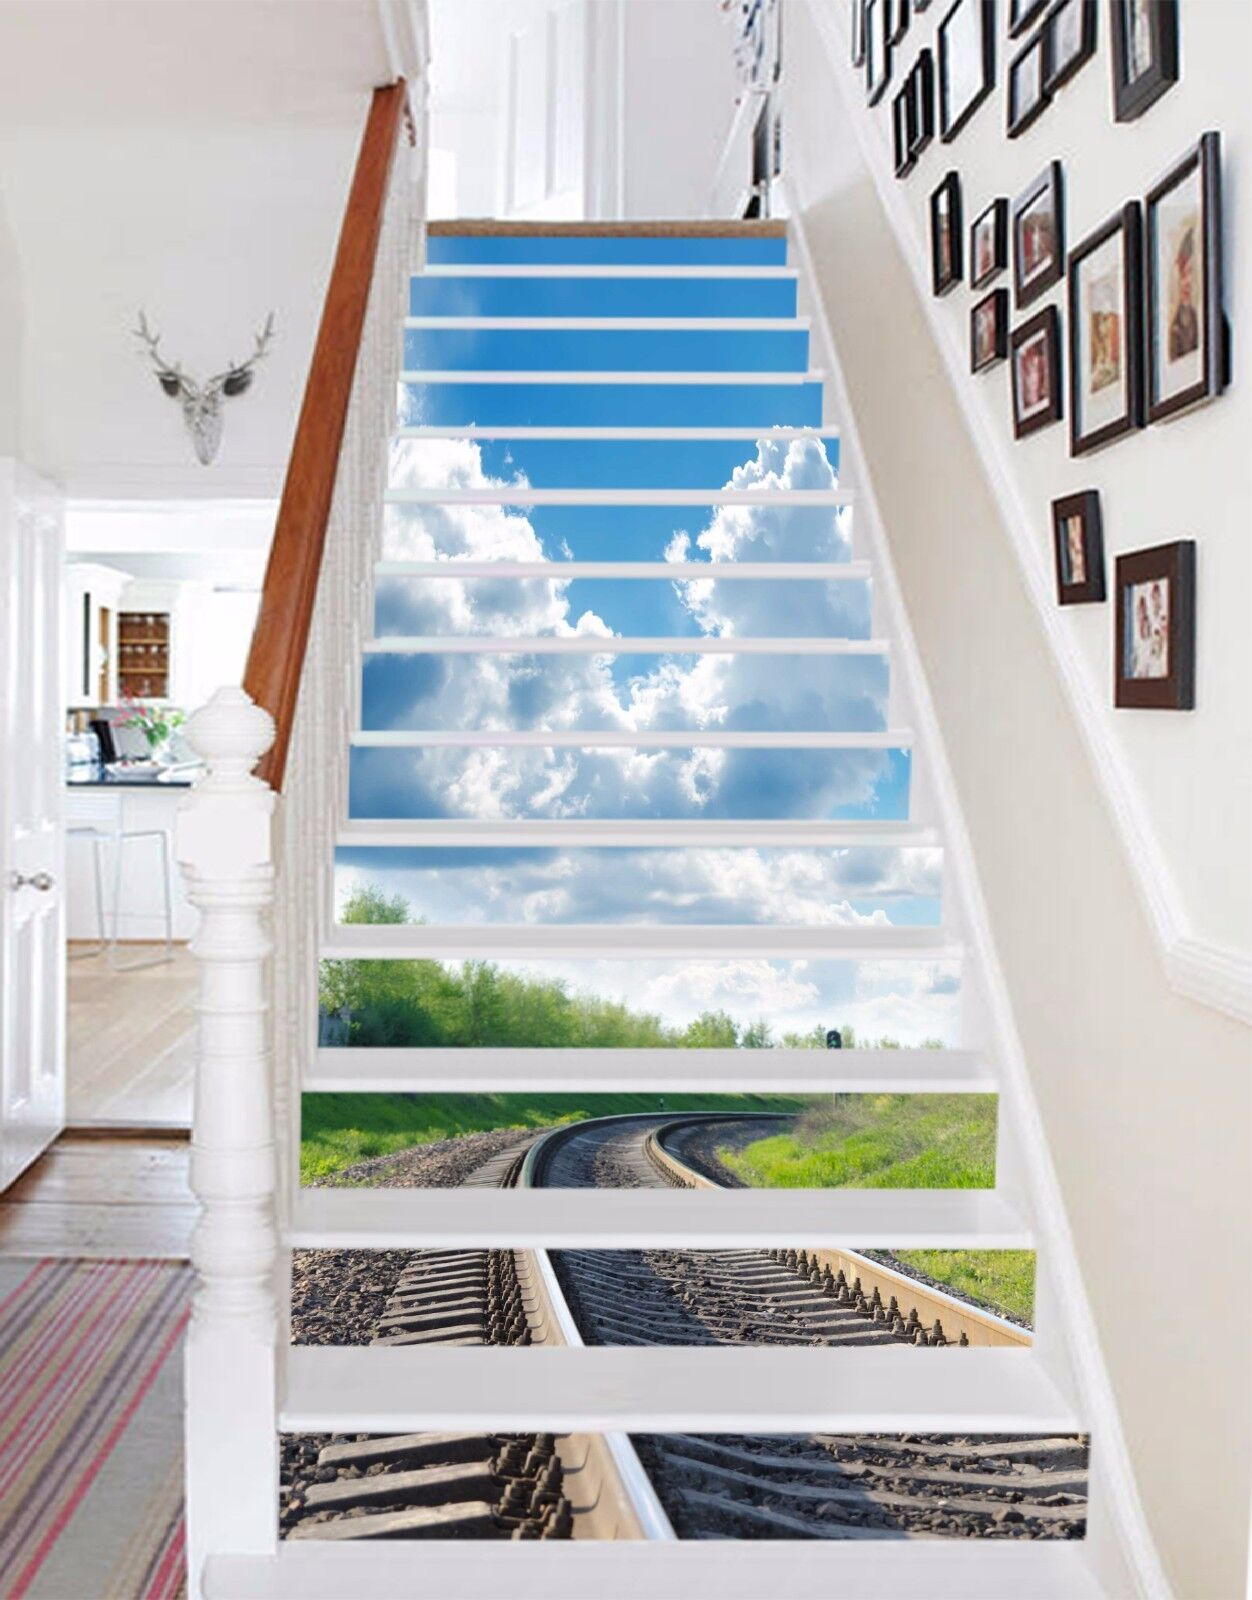 3D Train Rail 467 Risers Decoration Photo Mural Vinyl Decal Wallpaper CA